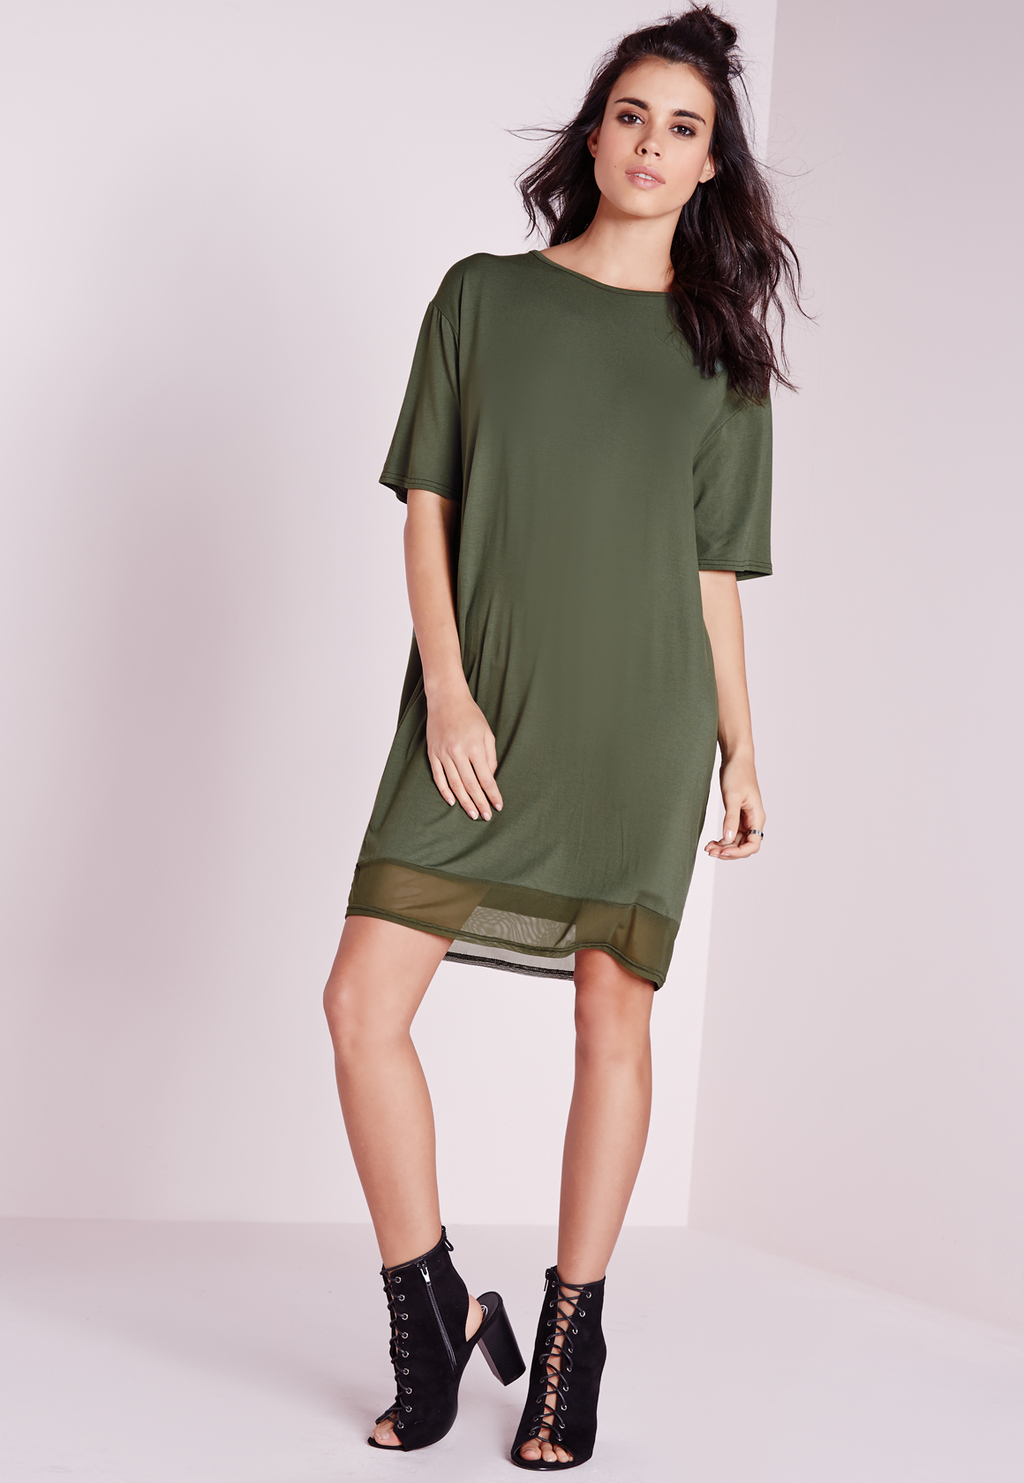 Cut Out Back T Shirt Dress Khaki, Beige - style: shift; pattern: plain; secondary colour: dark green; predominant colour: khaki; occasions: casual; length: just above the knee; fit: body skimming; fibres: viscose/rayon - 100%; neckline: crew; sleeve length: half sleeve; sleeve style: standard; texture group: crepes; pattern type: fabric; season: s/s 2016; wardrobe: highlight